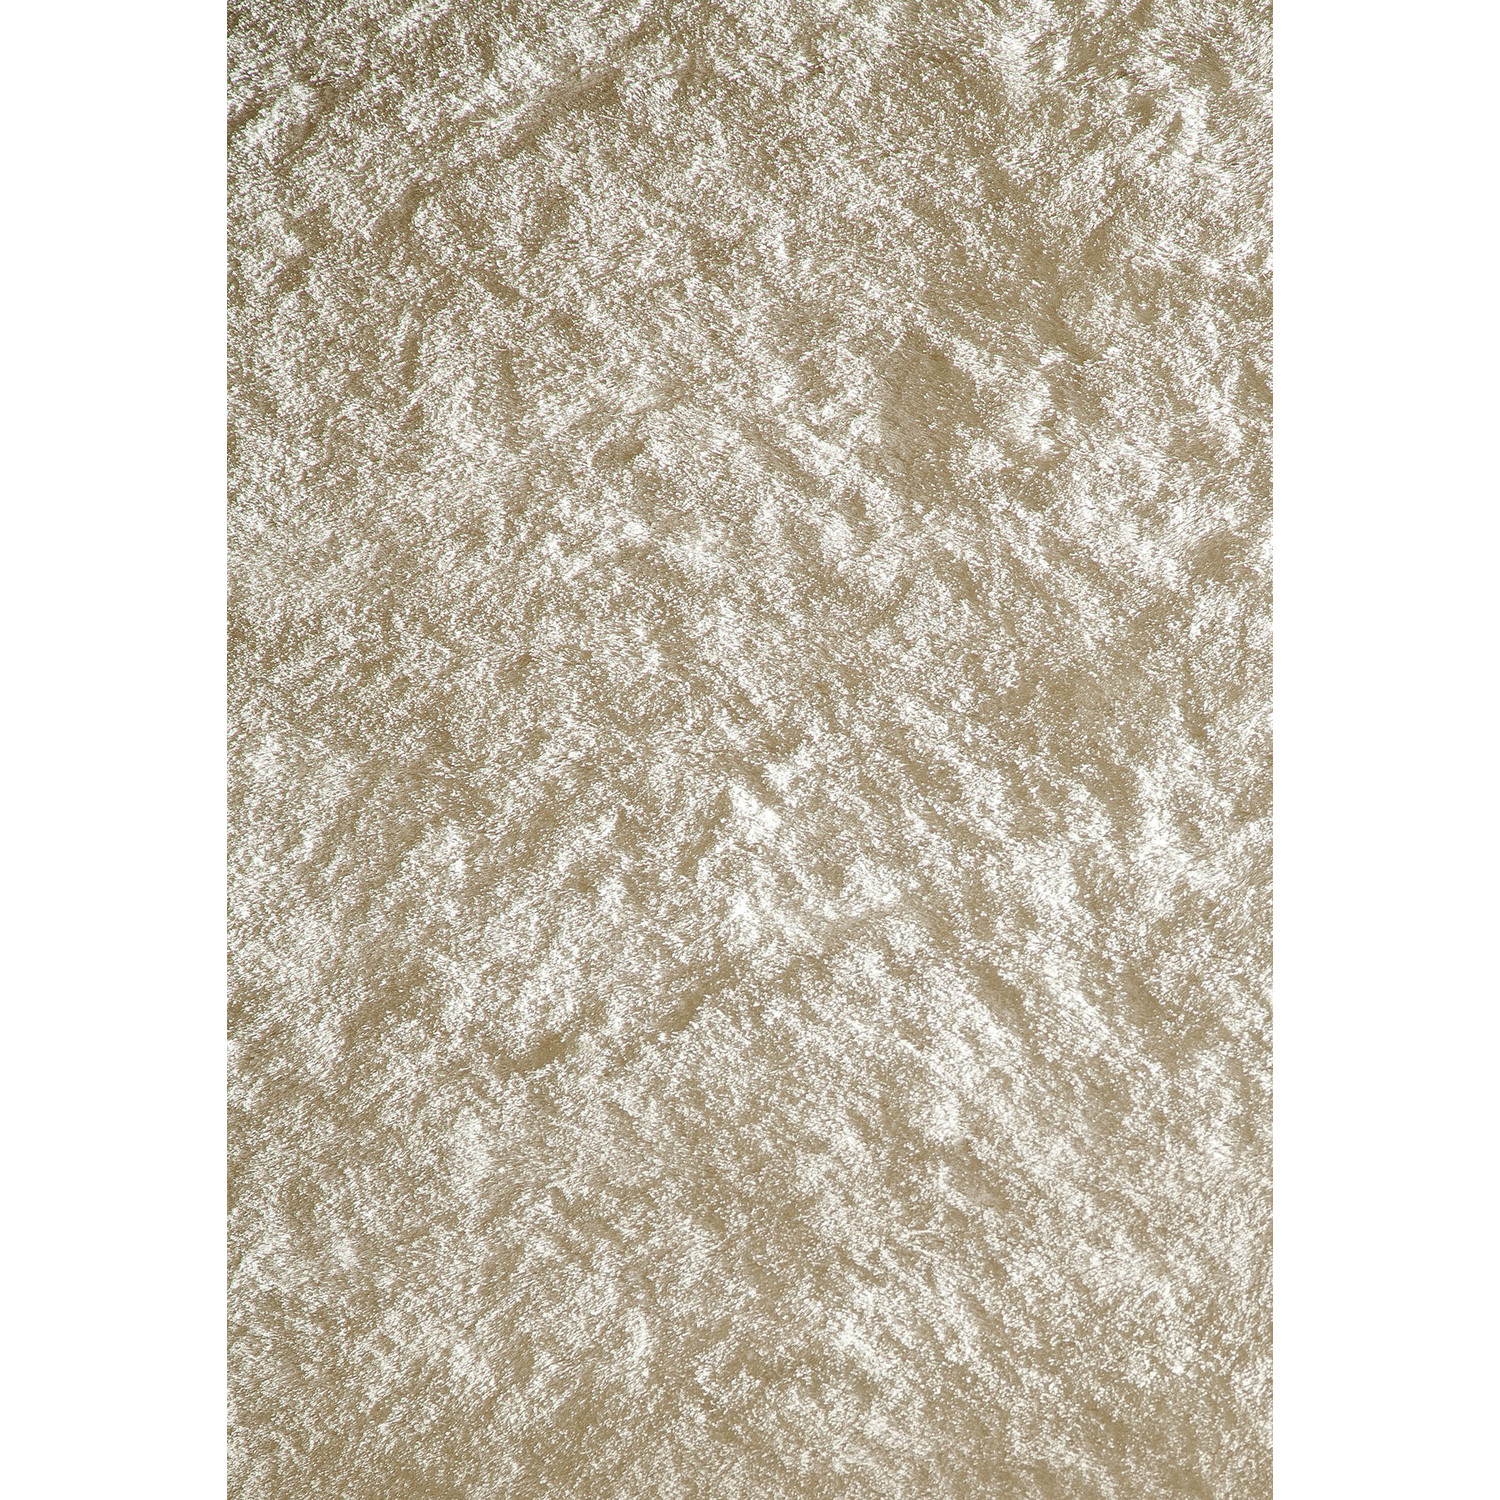 Have A Cool Floor With Momeni Rugs Ideas: Charming Luster Shag White Beige Area Rug By Momeni Rugs For Floor Decor Ideas